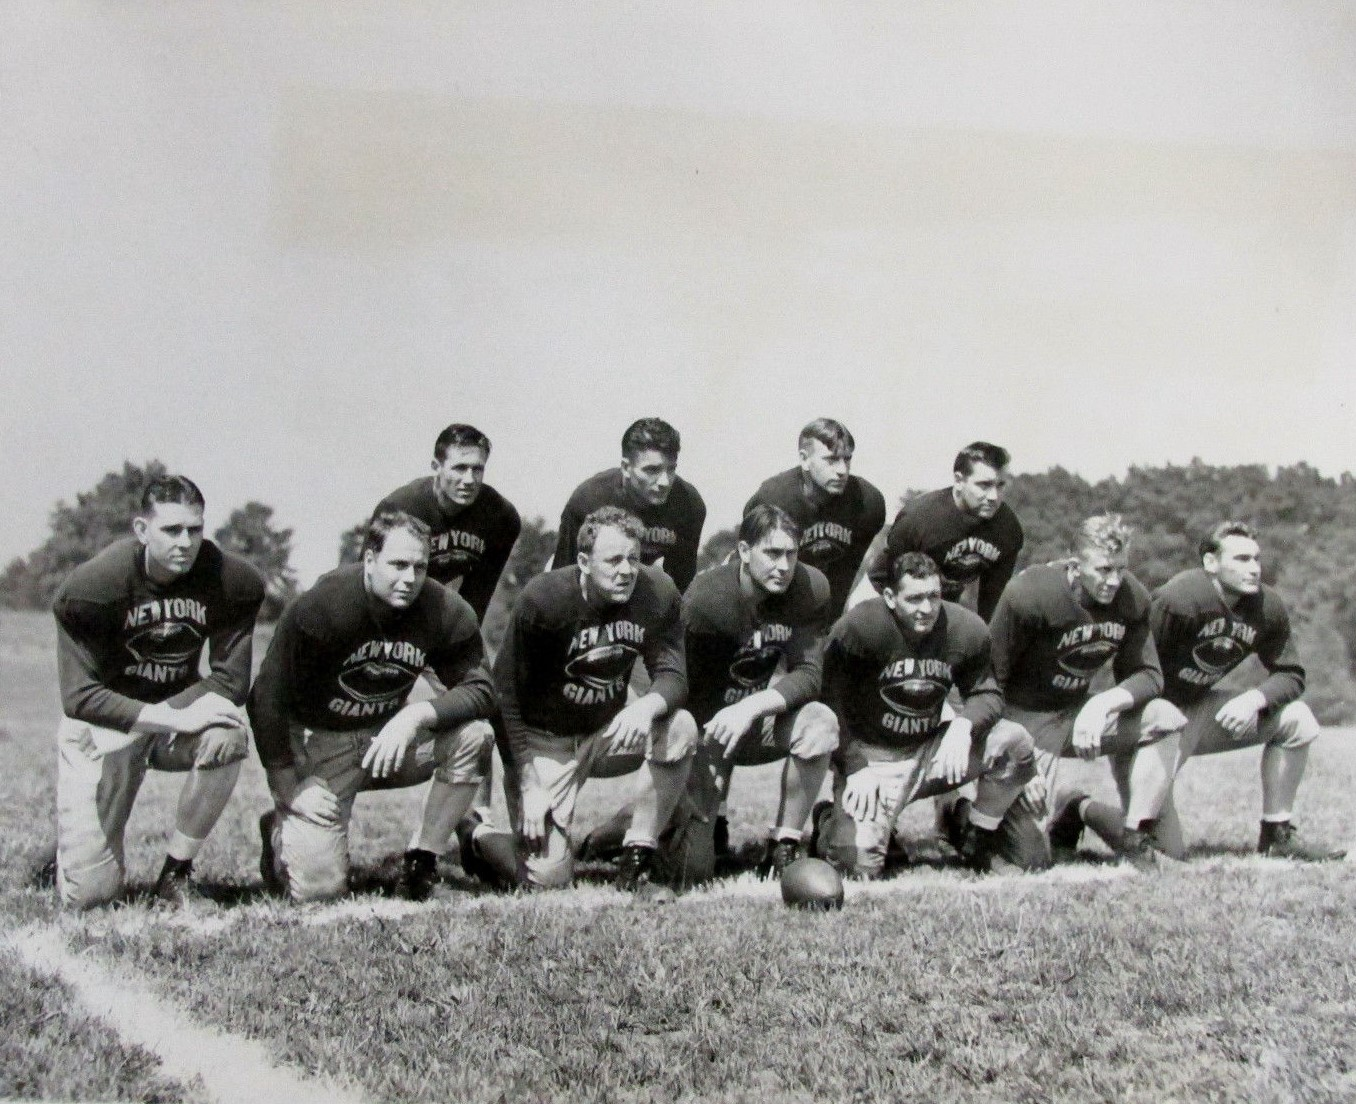 1939 New York Giants Training Camp